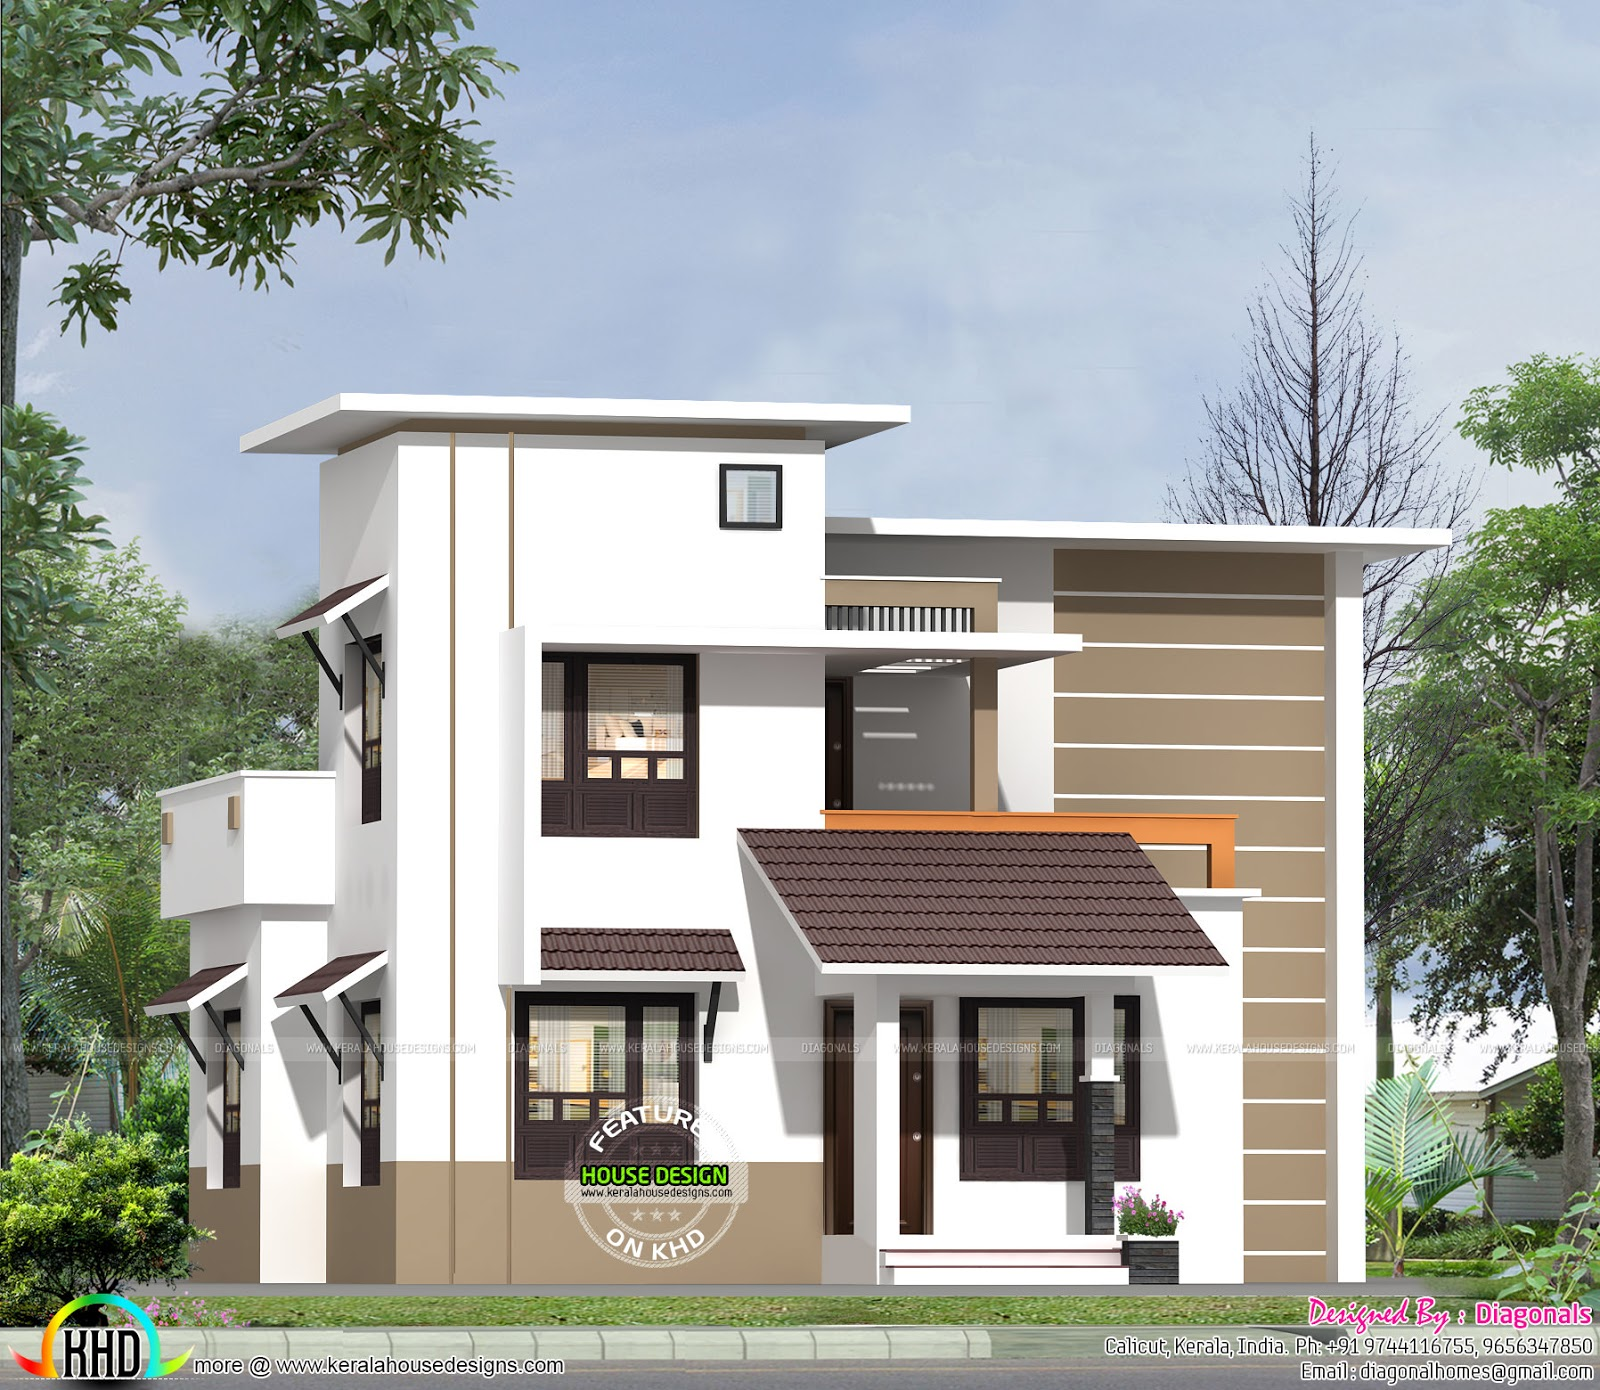 Affordable low cost home kerala home design and floor plans for Low cost house plans with photos in kerala